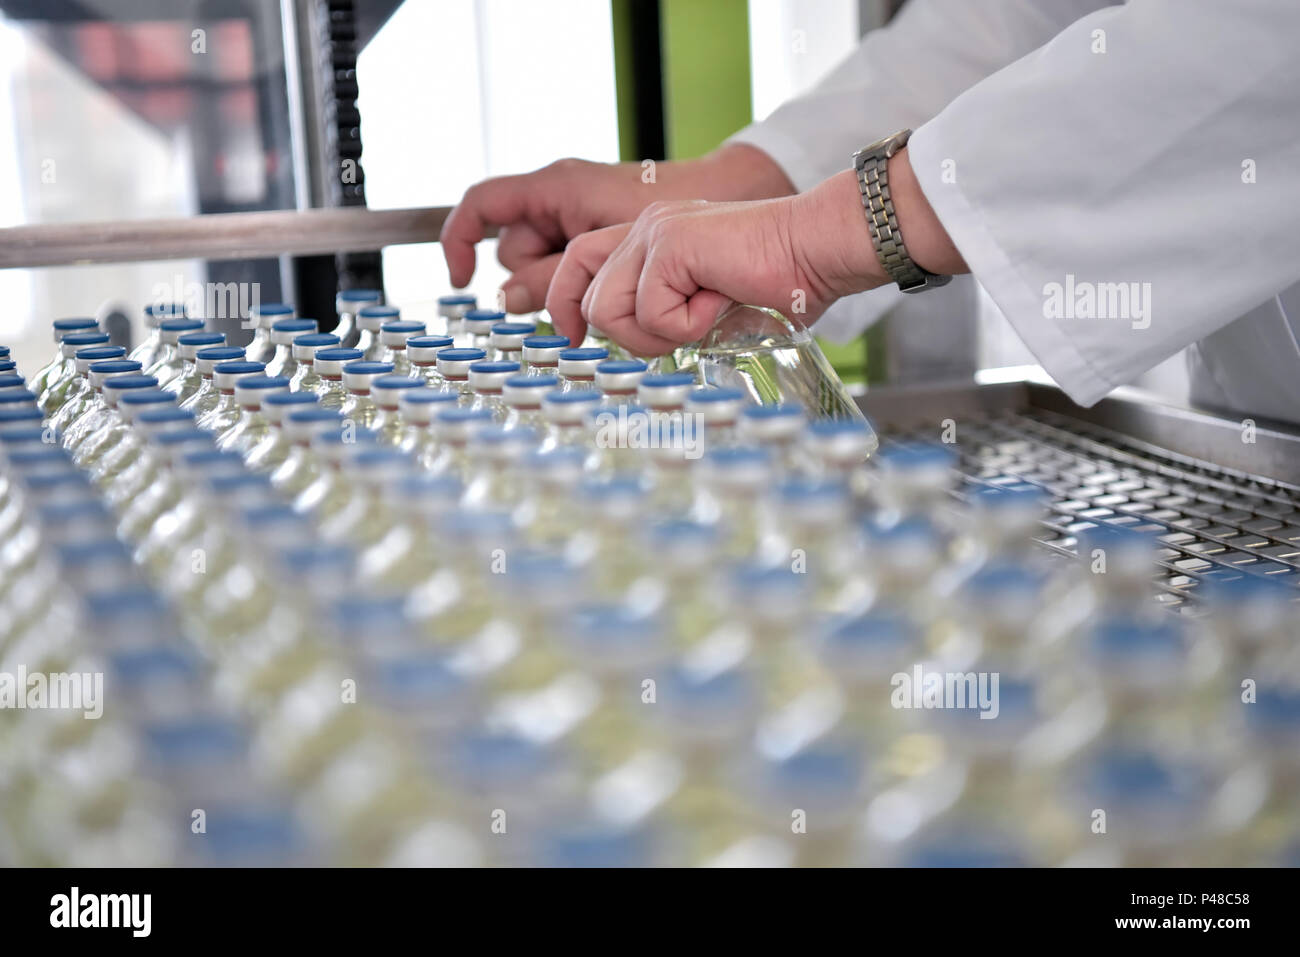 production and filling of drugs in a pharmaceutical conveyor belt with bottles and a worker - Stock Image